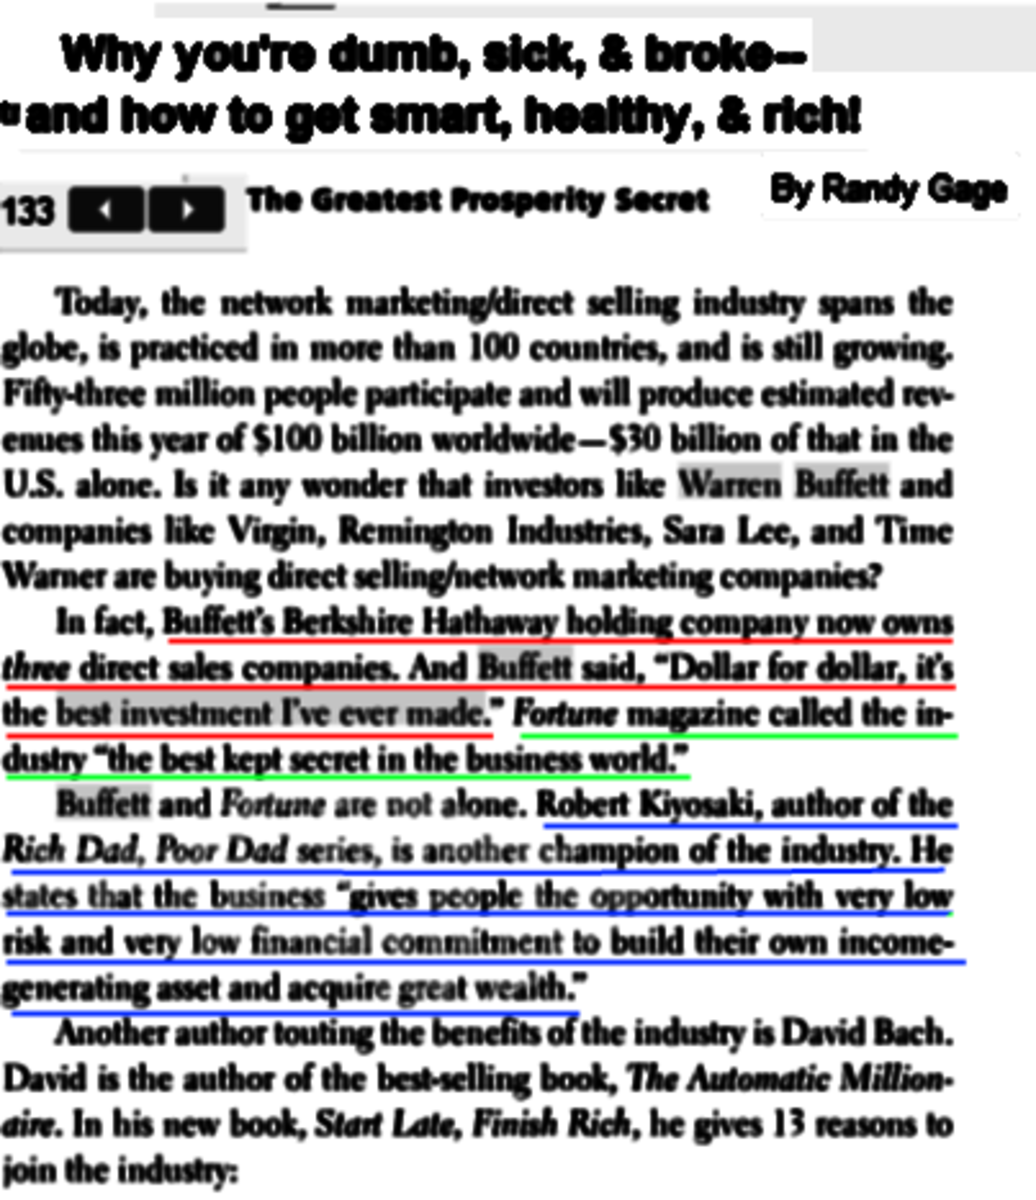 """Page 133 from the book by Randy Gage, most of the """"expert watch"""" are copied from here and the next page."""